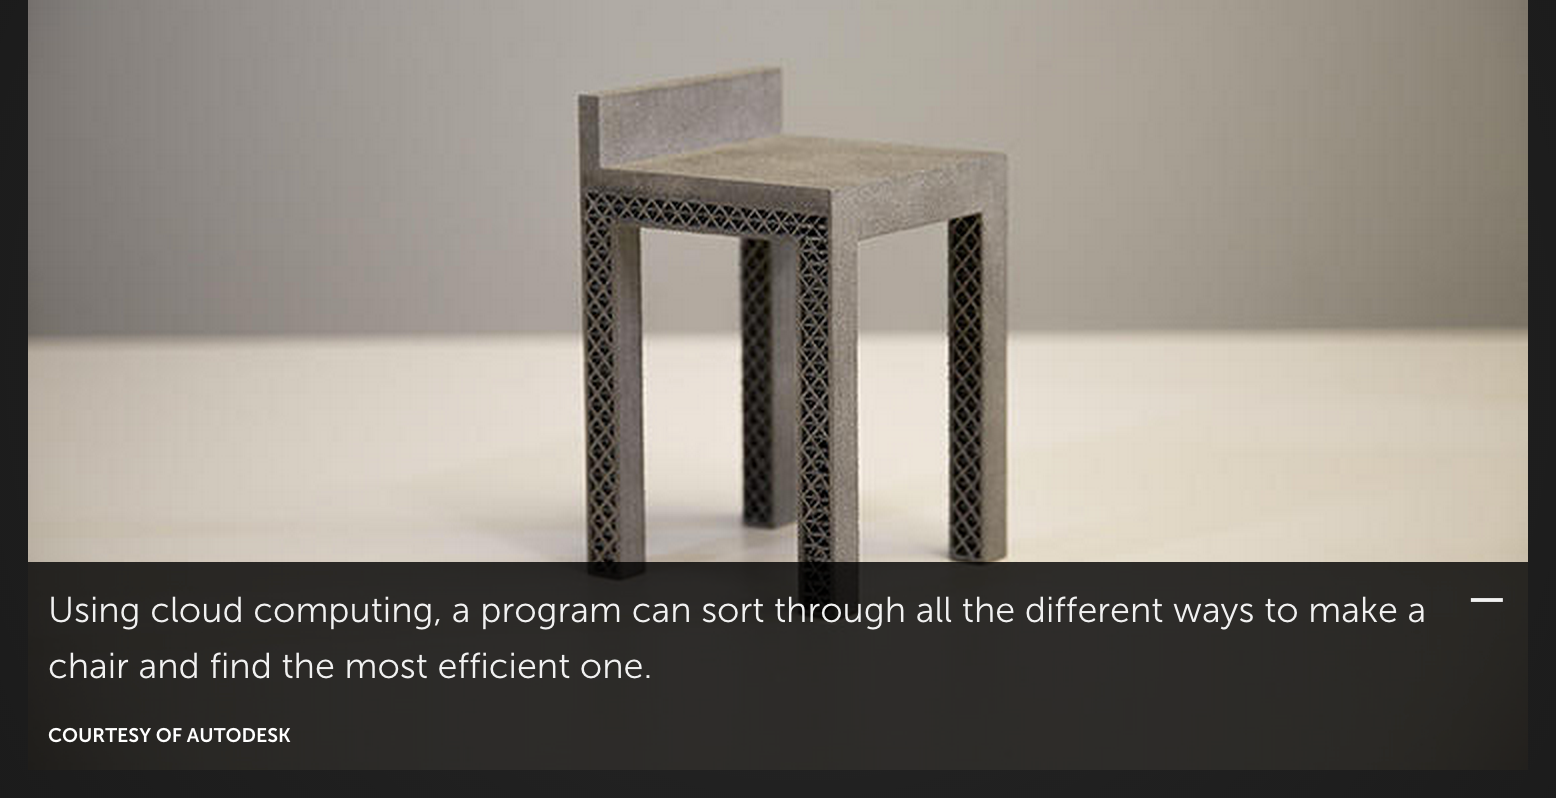 "Ferro points out ""A computer isn't constrained by preconceived notions of what a chair should look like."" It may be true that the chair was efficiently produced by a computer, but it still looks incredibly uncomfortable."